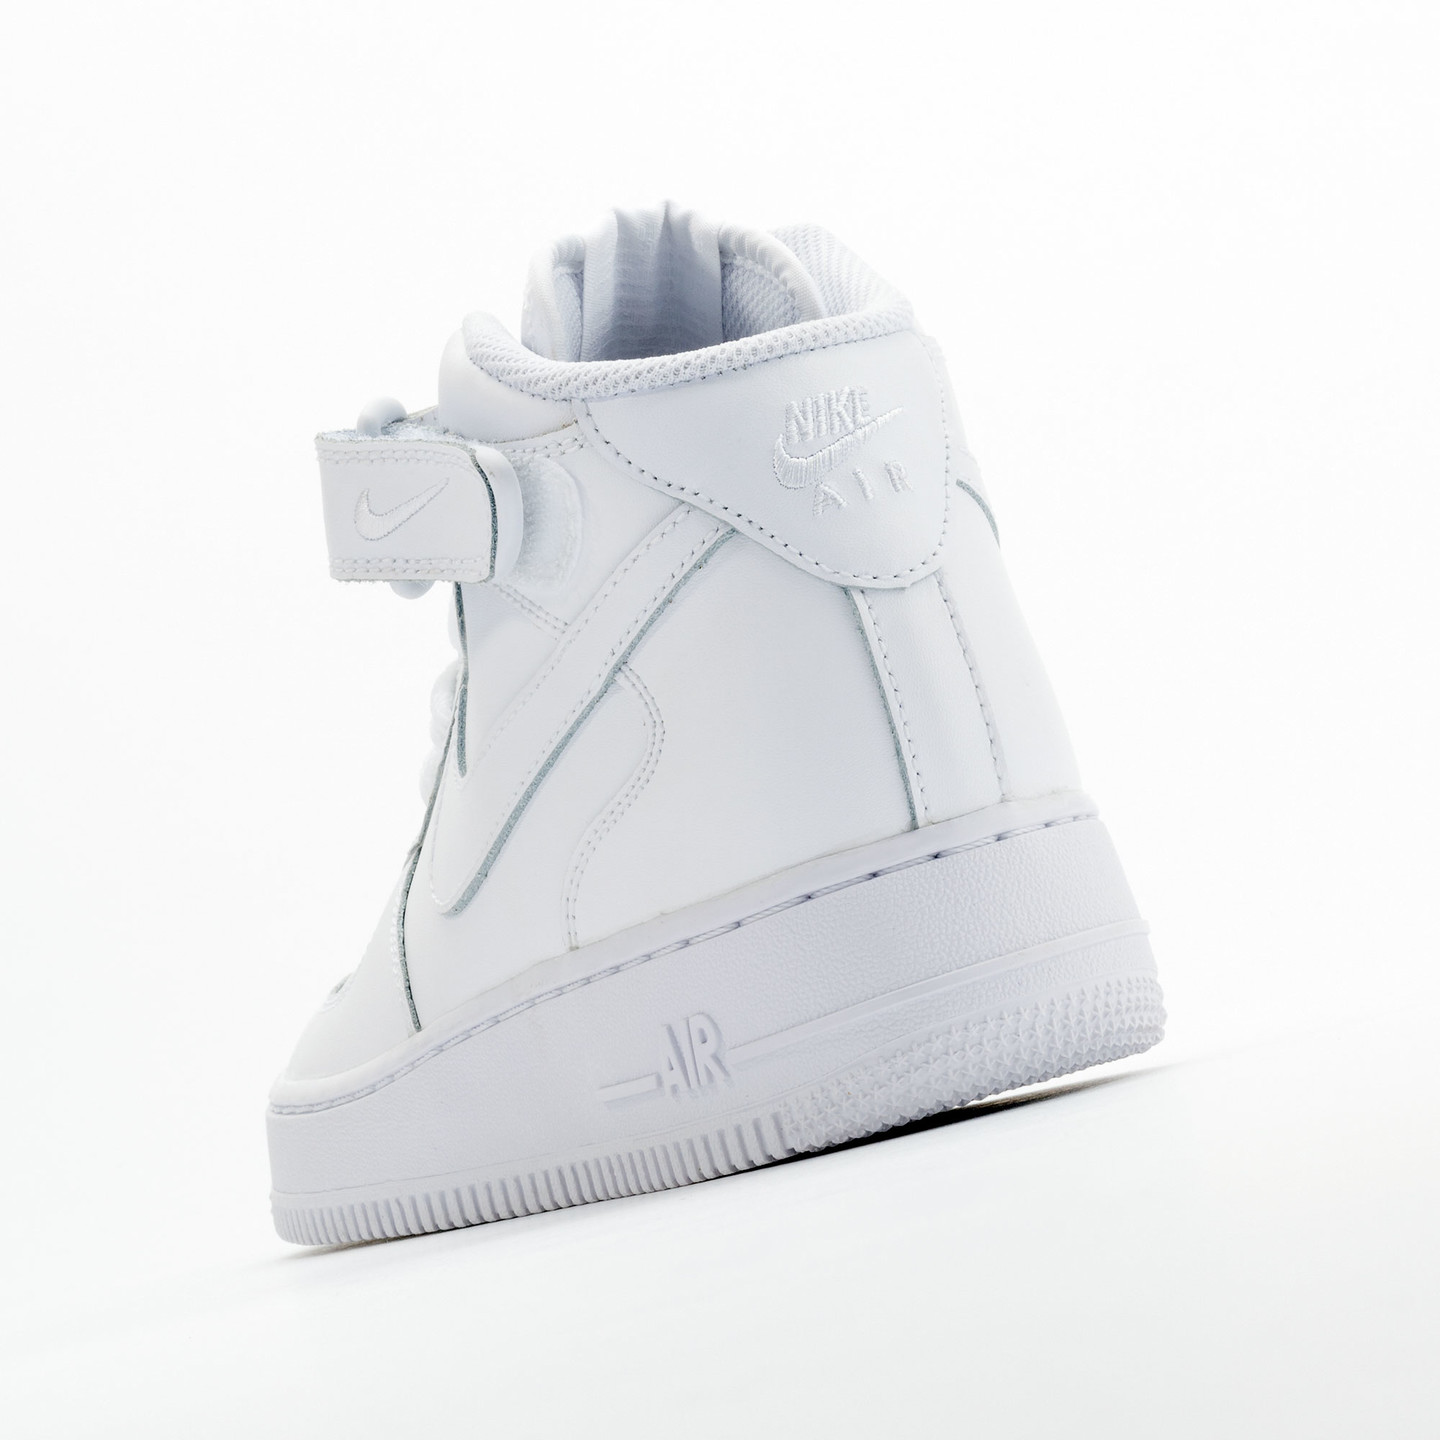 Nike Air Force 1 Mid GS White / White 314195-113-36.5